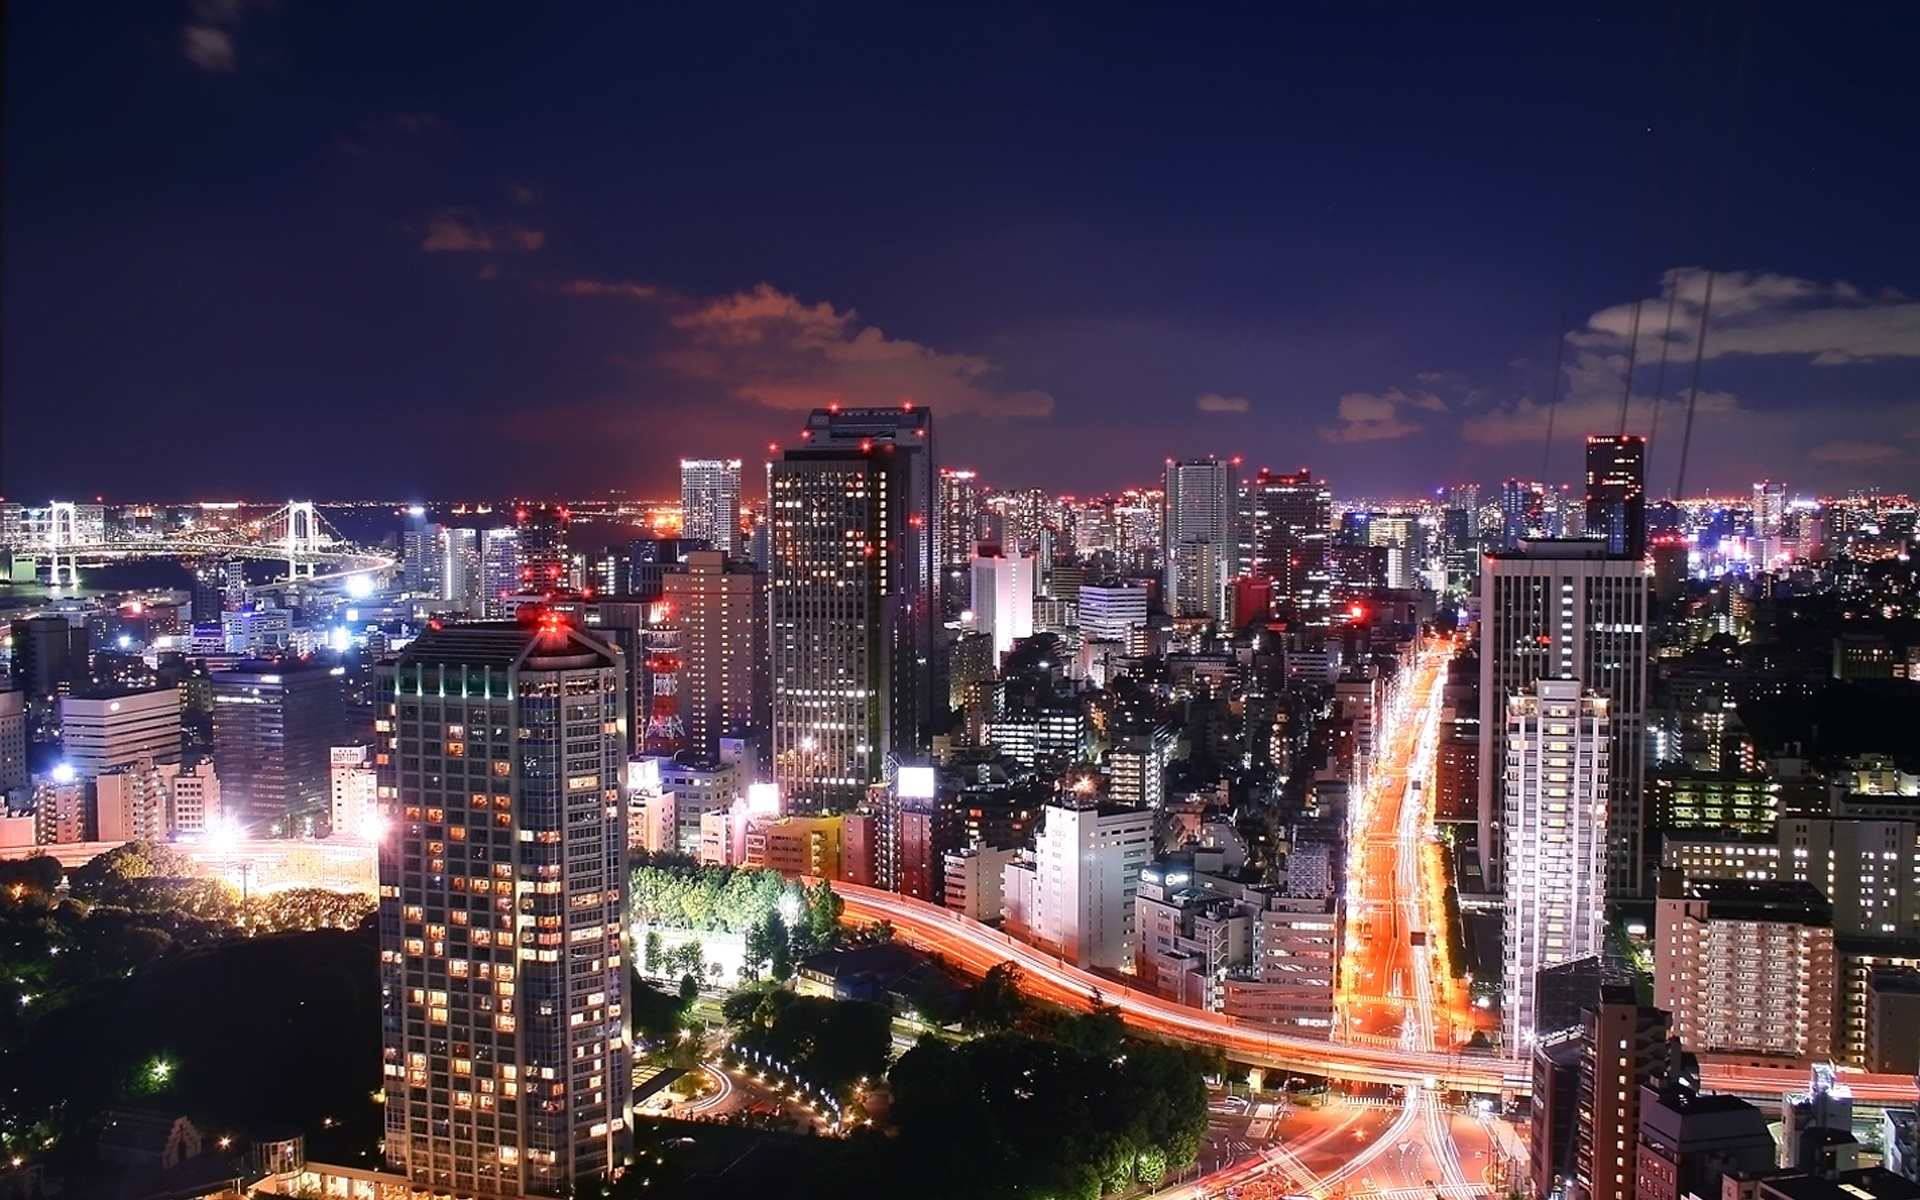 Tokyo City Night 1920 x 1200 Download Close 1920x1200